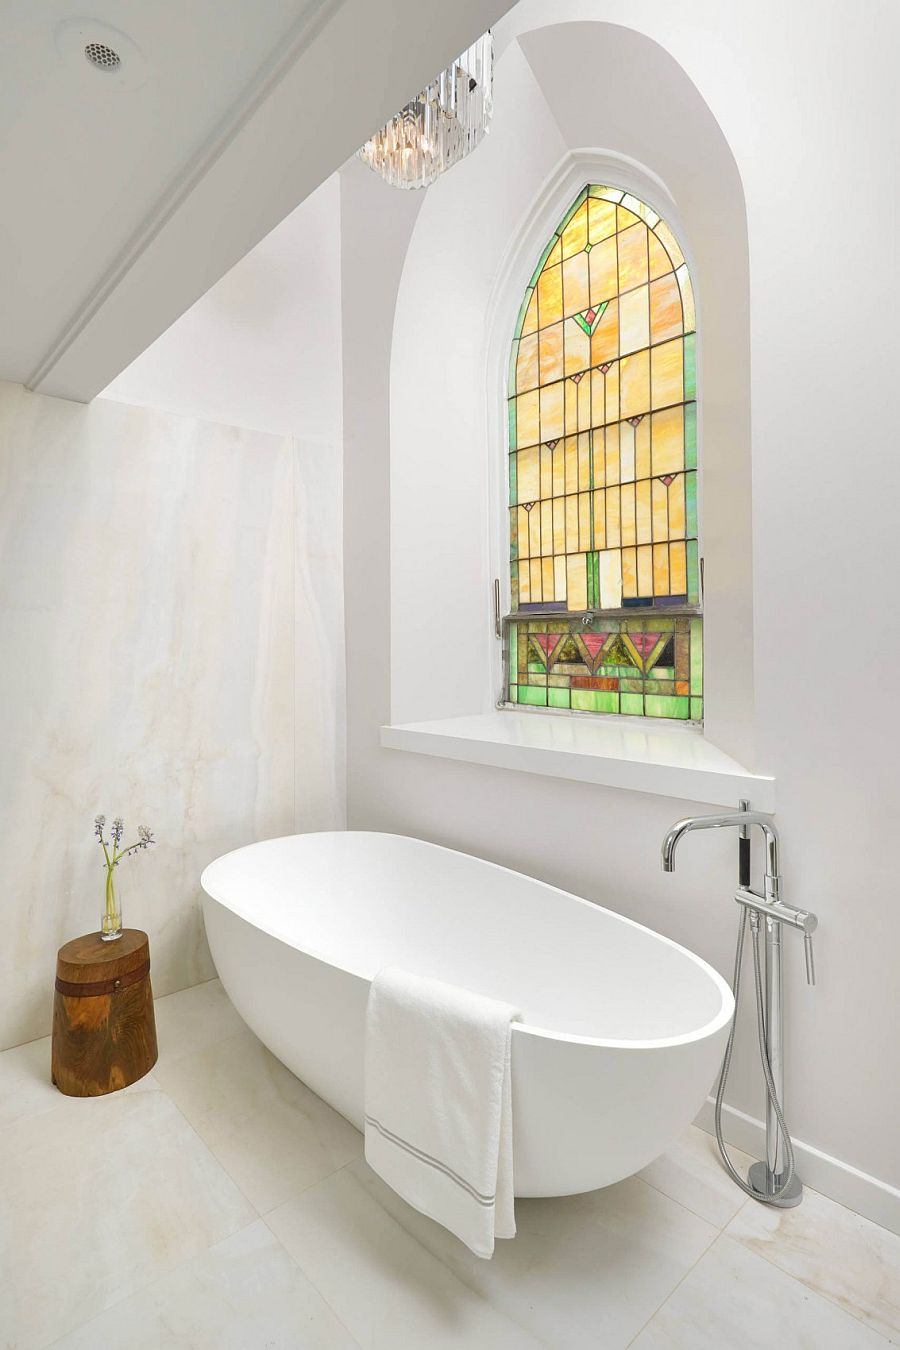 Stained glass window makes its presence felt in the contemporary bathroom